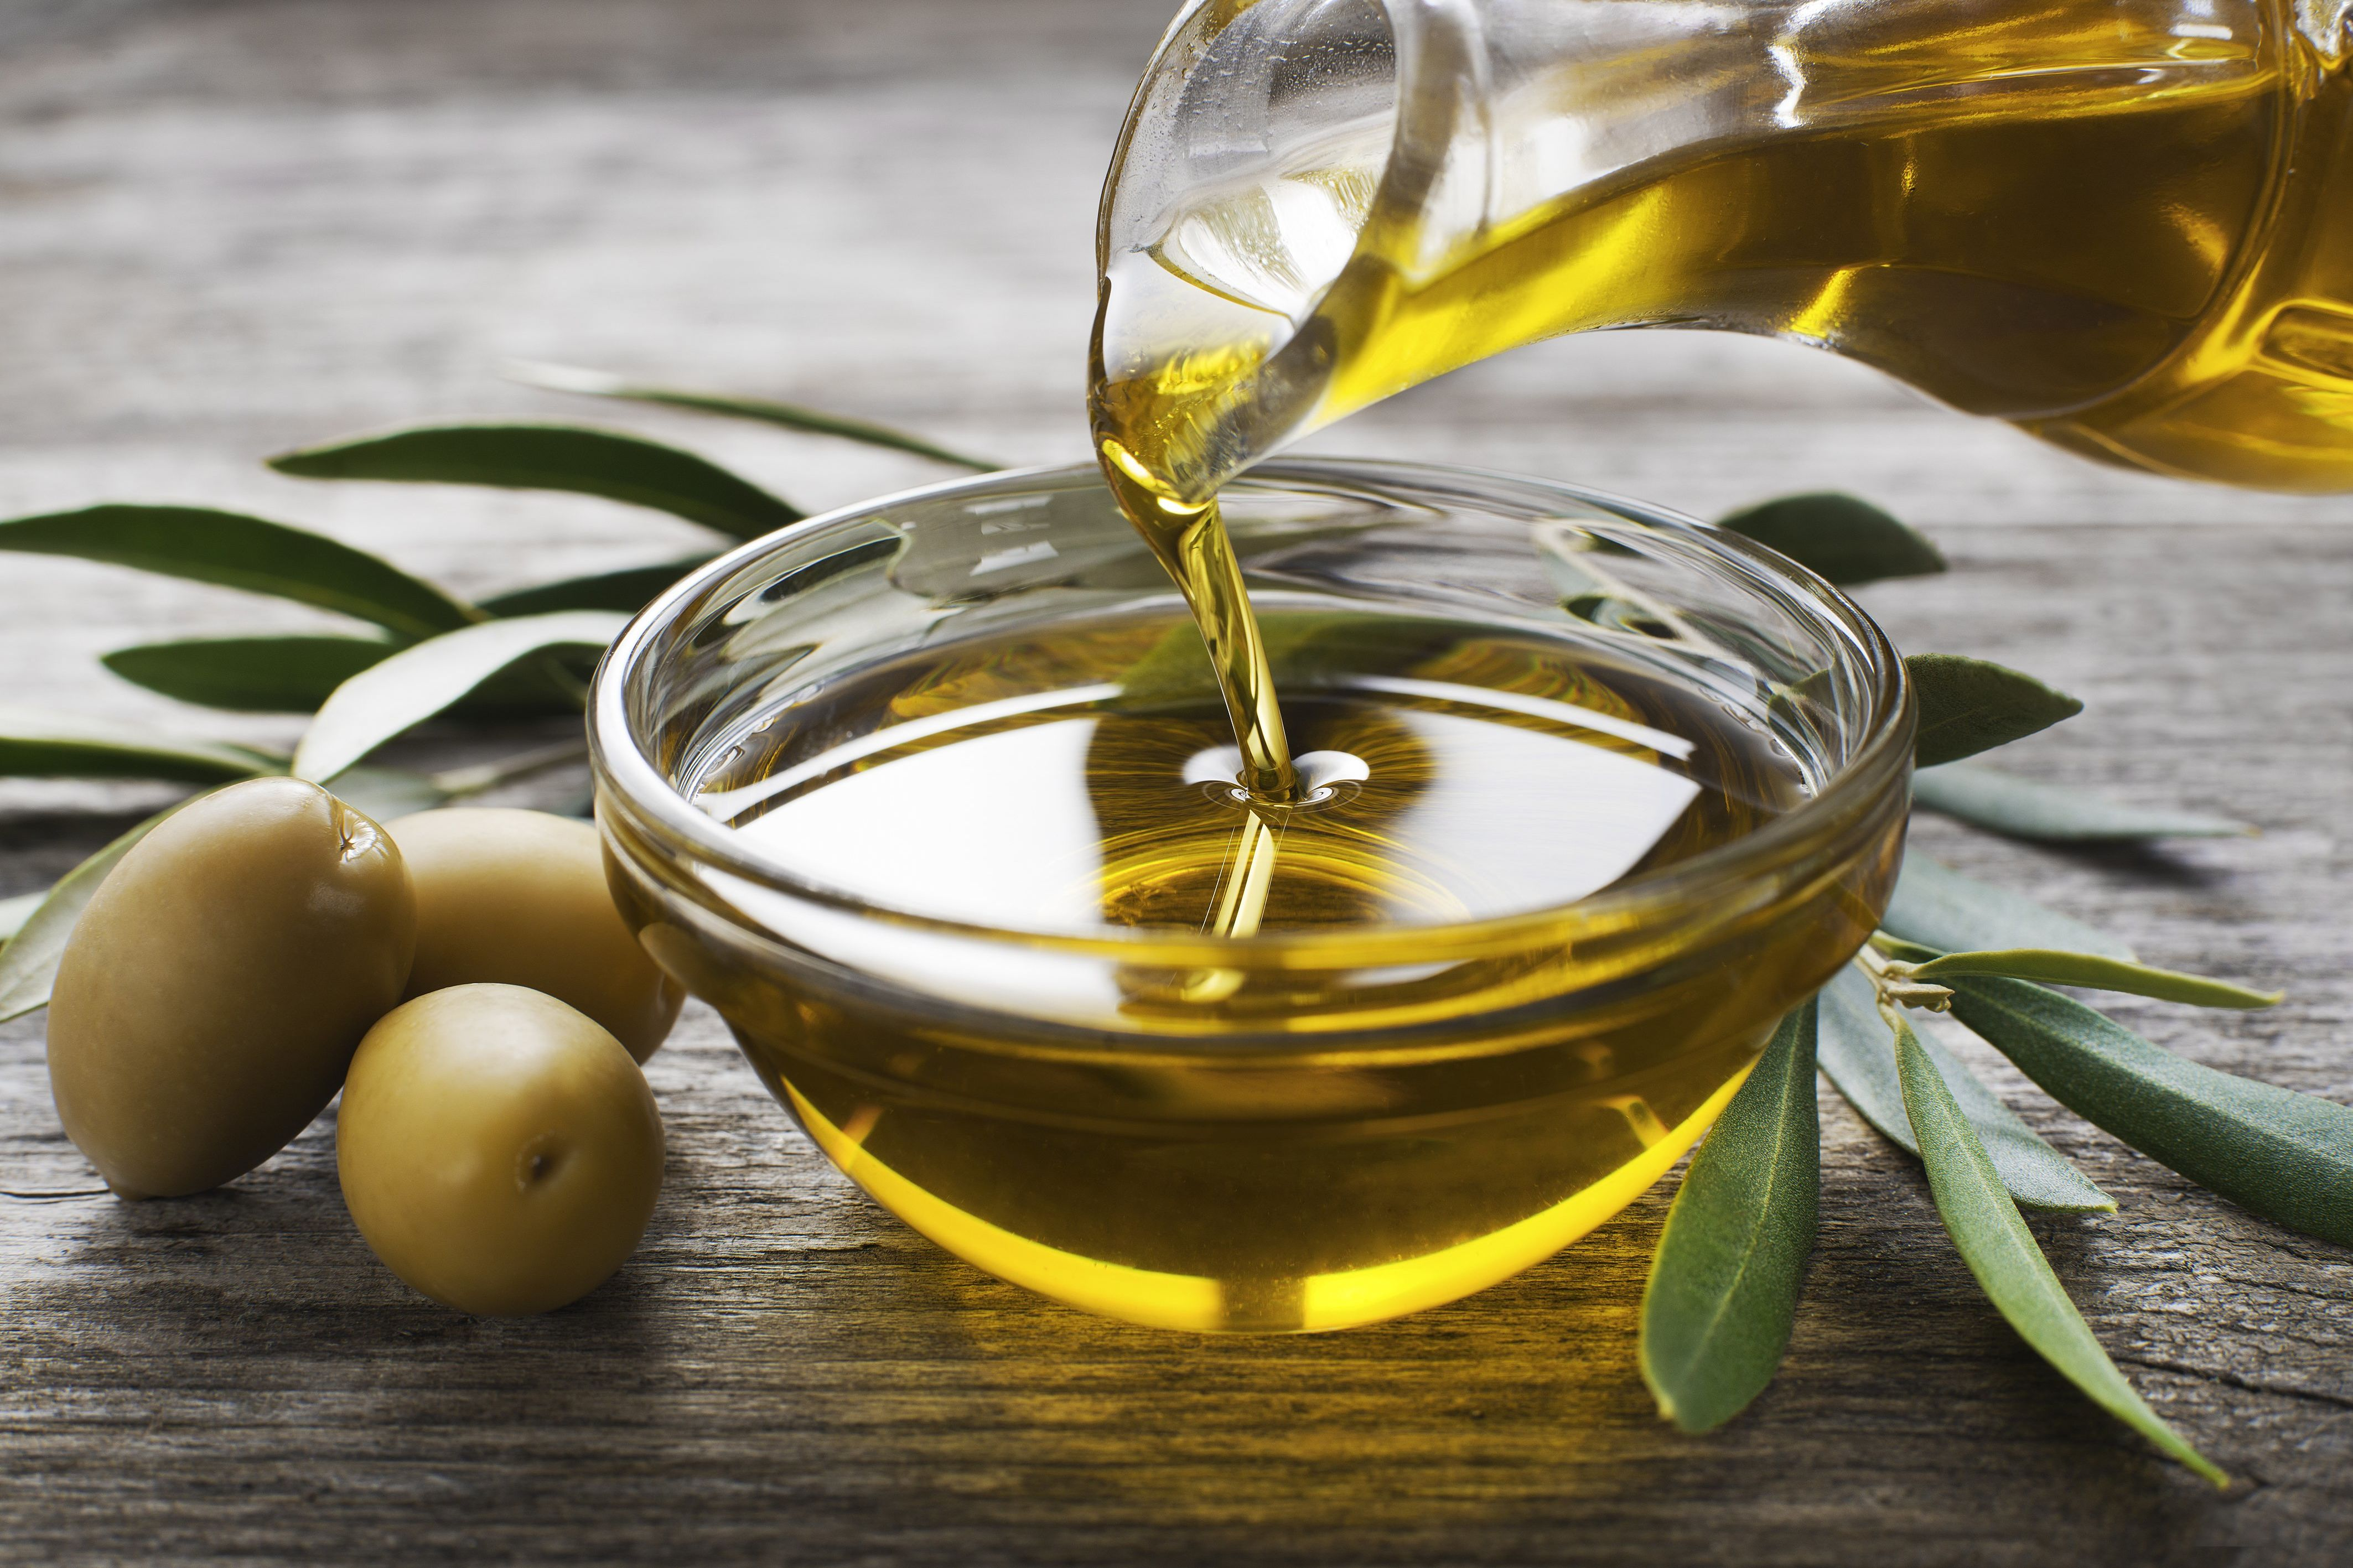 Why Olive Oil Is So Good for the Heart